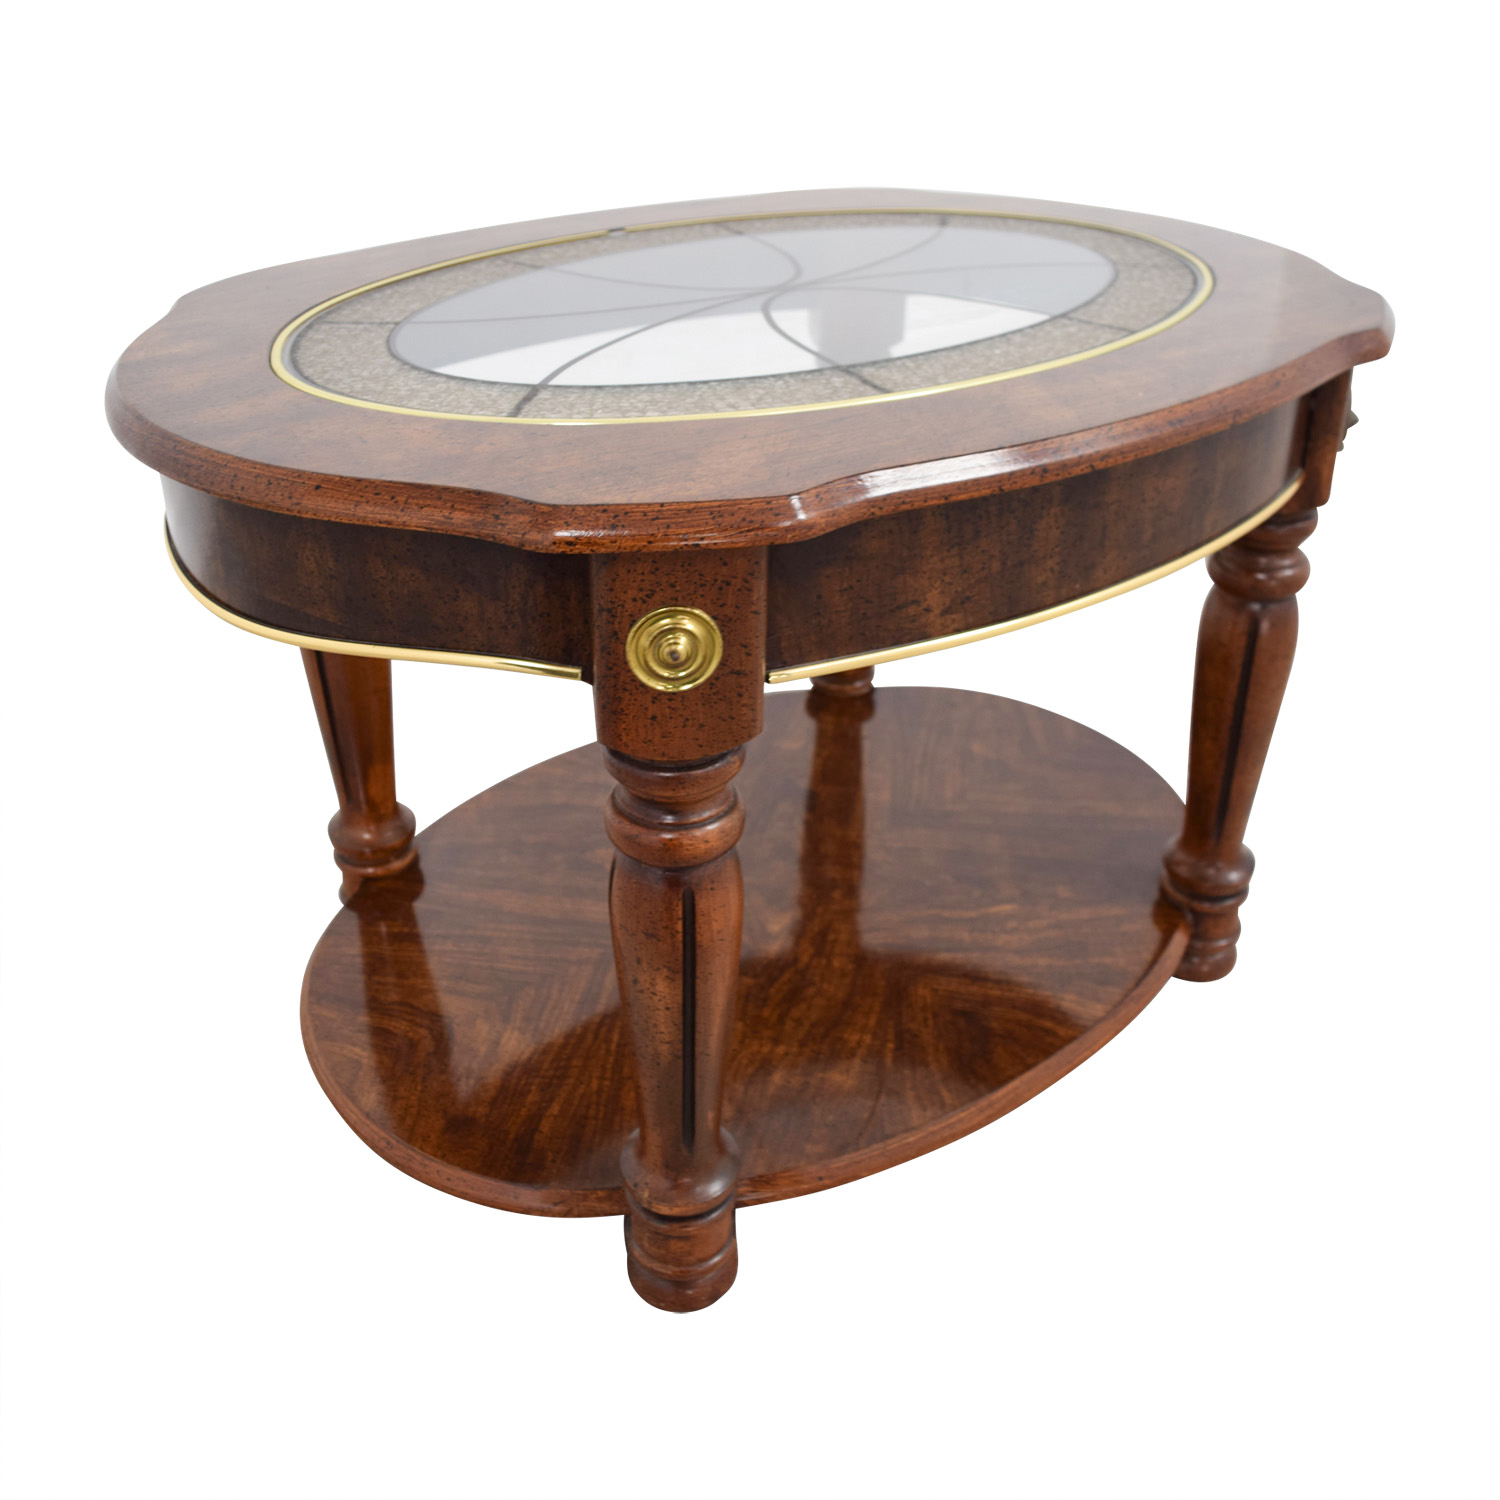 80 off vintage small round coffee table tables Coffee tables online